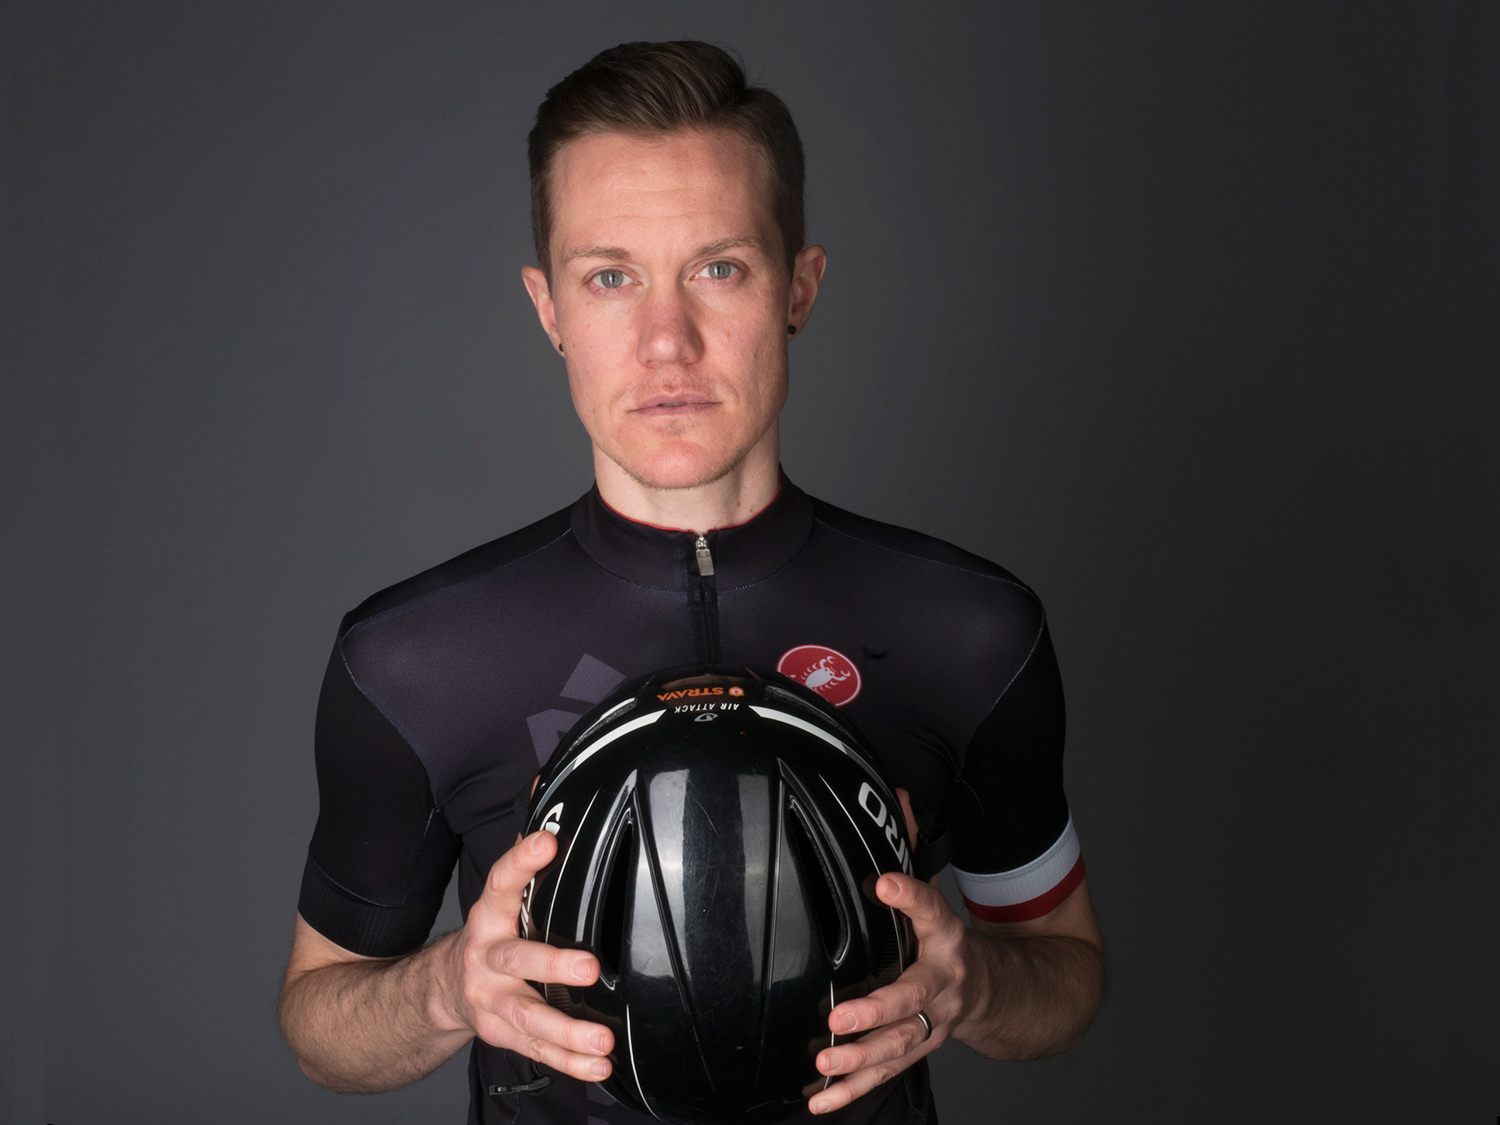 Chris Mosier on Making History as First Trans Member of Team USA